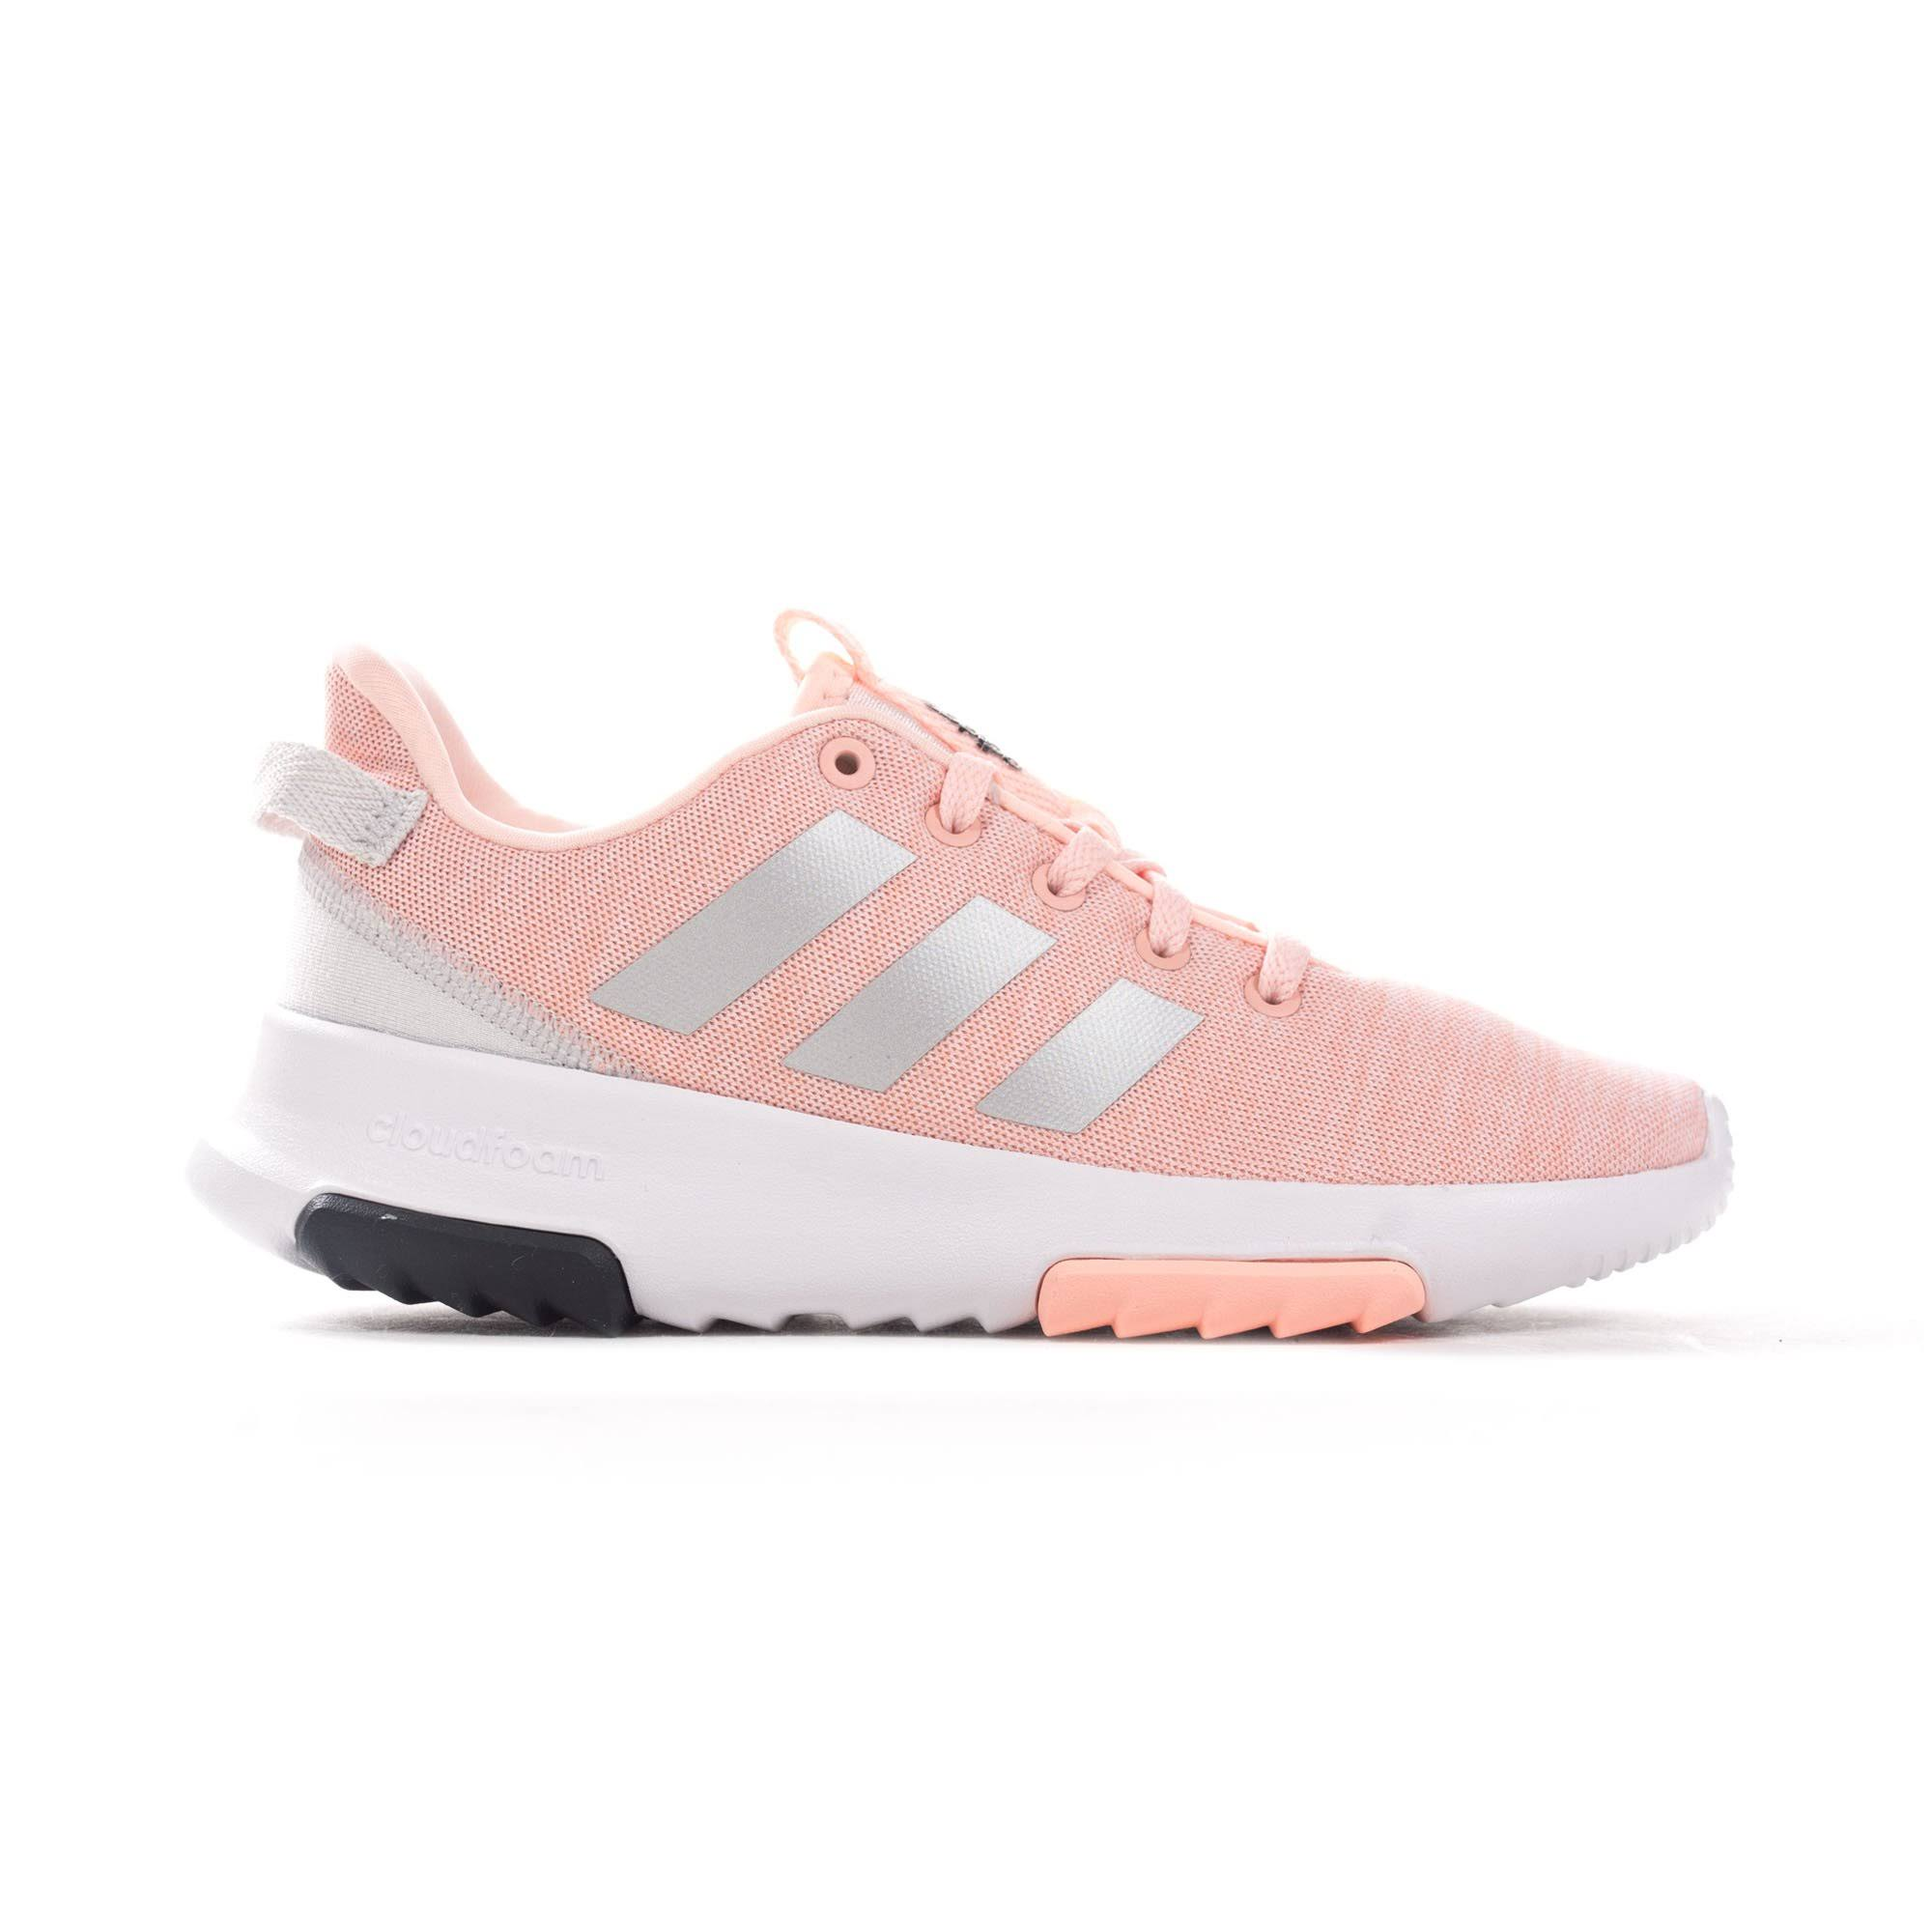 Adidas CF Racer TR K DB1868 Universal All Year Kids Shoes Pink 6.5 ...